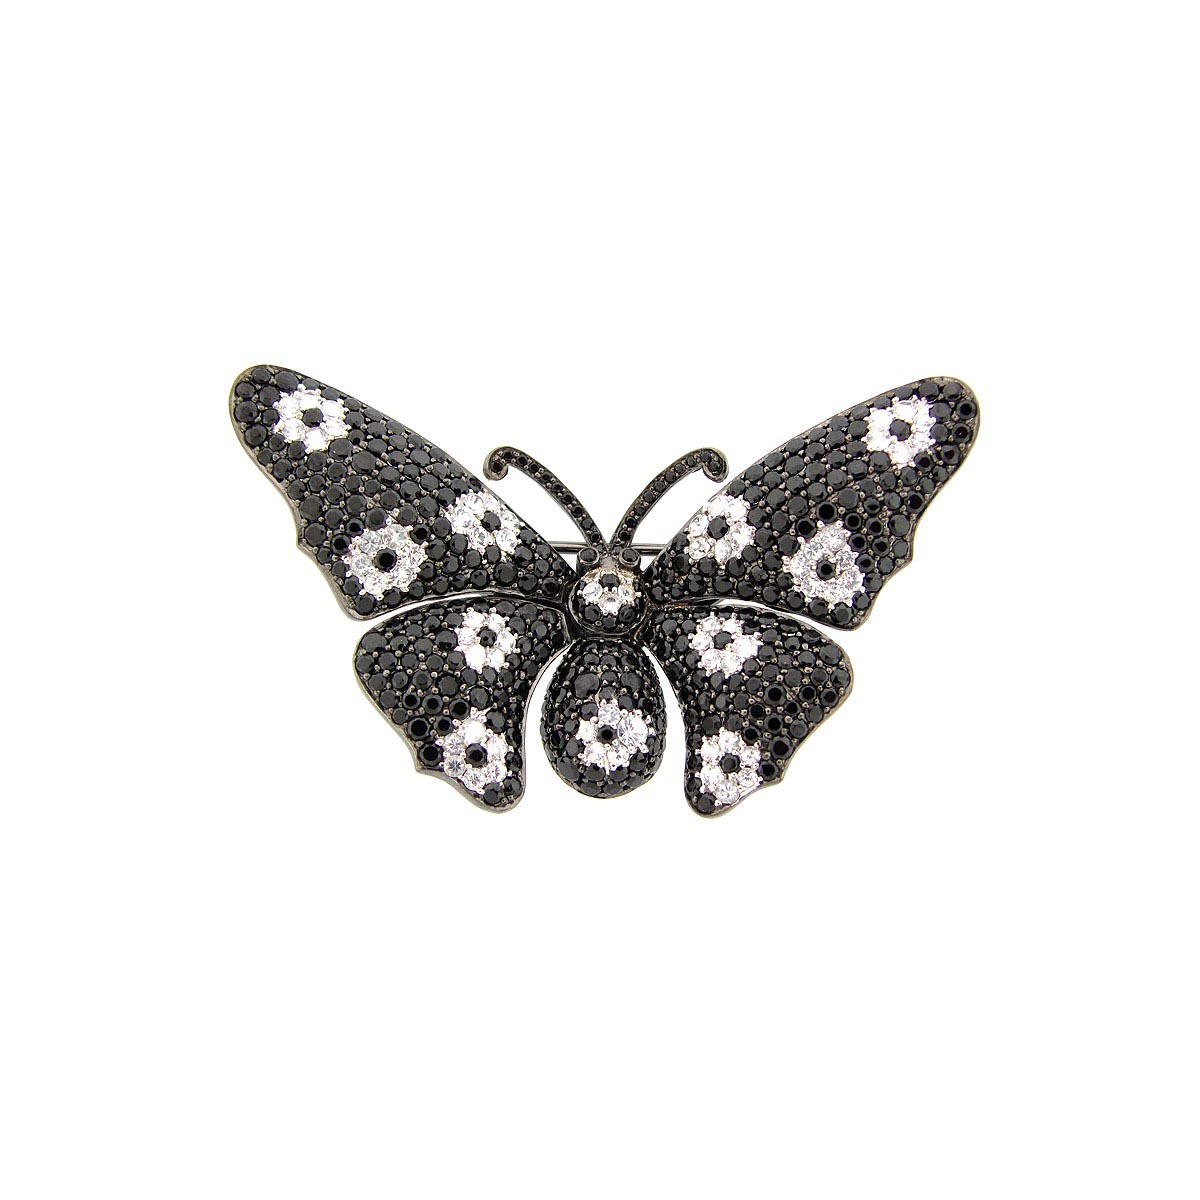 Black Spinel & White Sapphire Broach